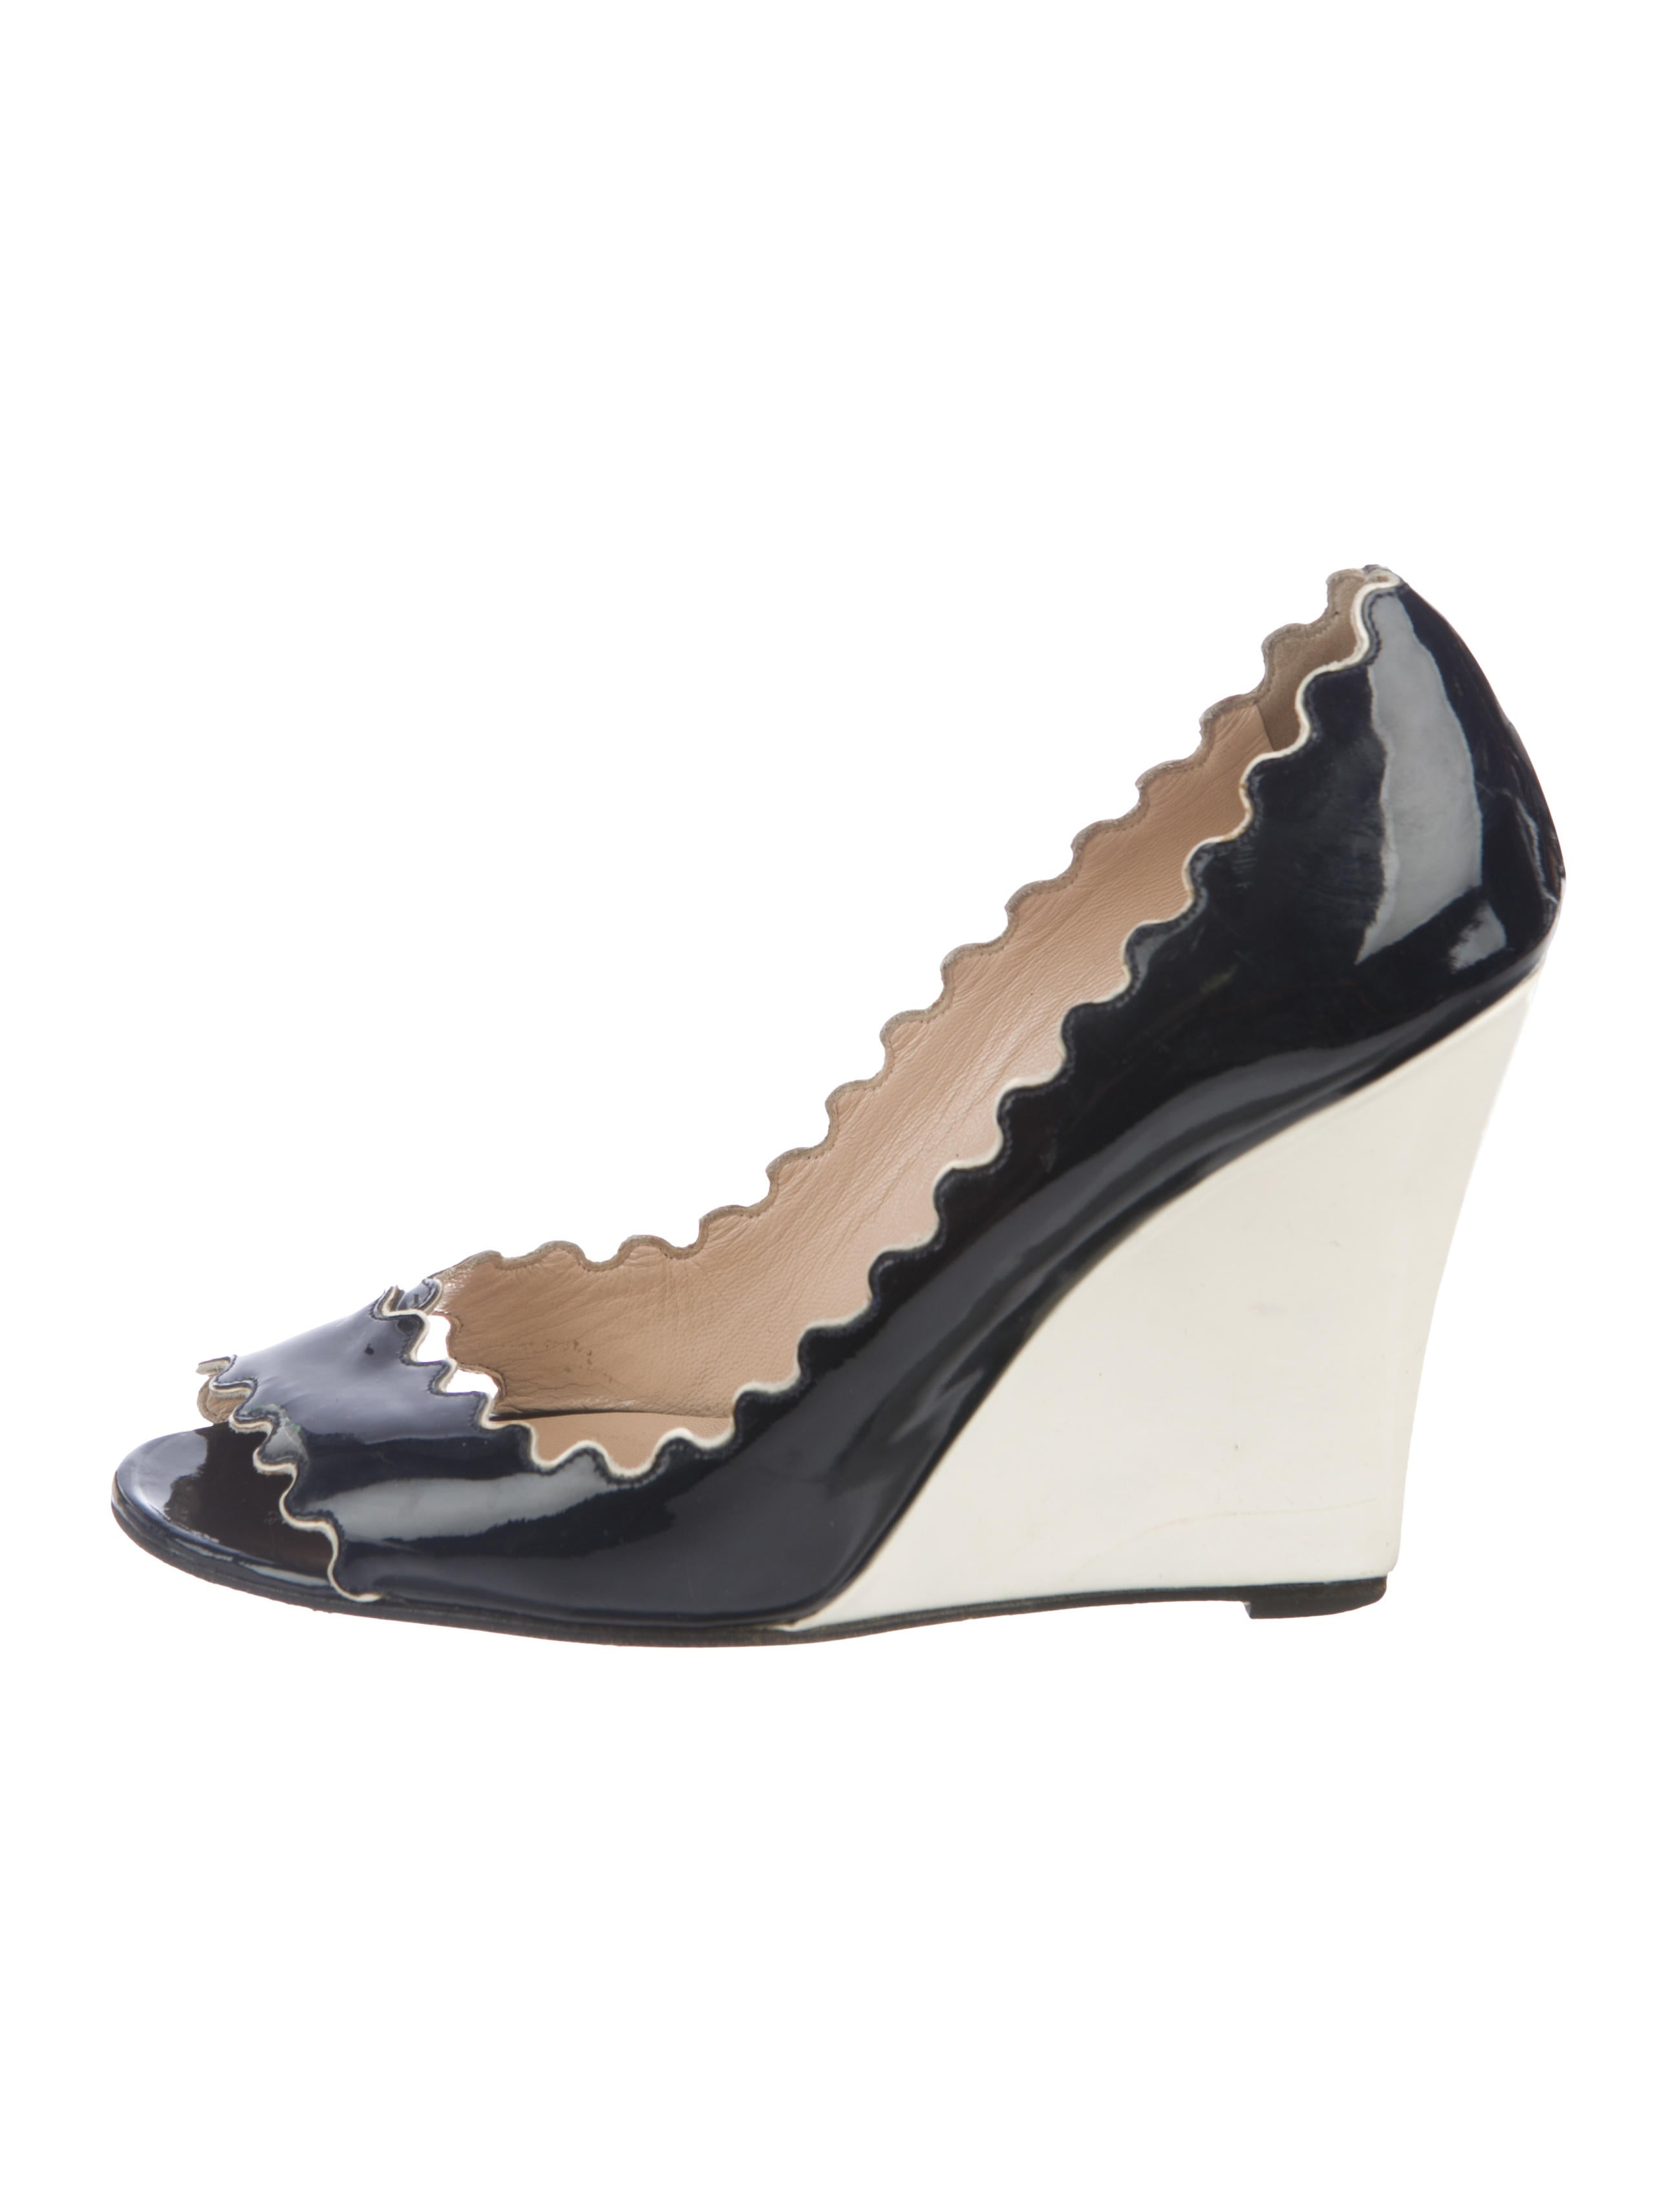 low price fee shipping online cheap sale finishline Christian Louboutin Scalloped Peep-Toe Wedges visa payment online prices cheap price buy cheap best seller 1m7uF